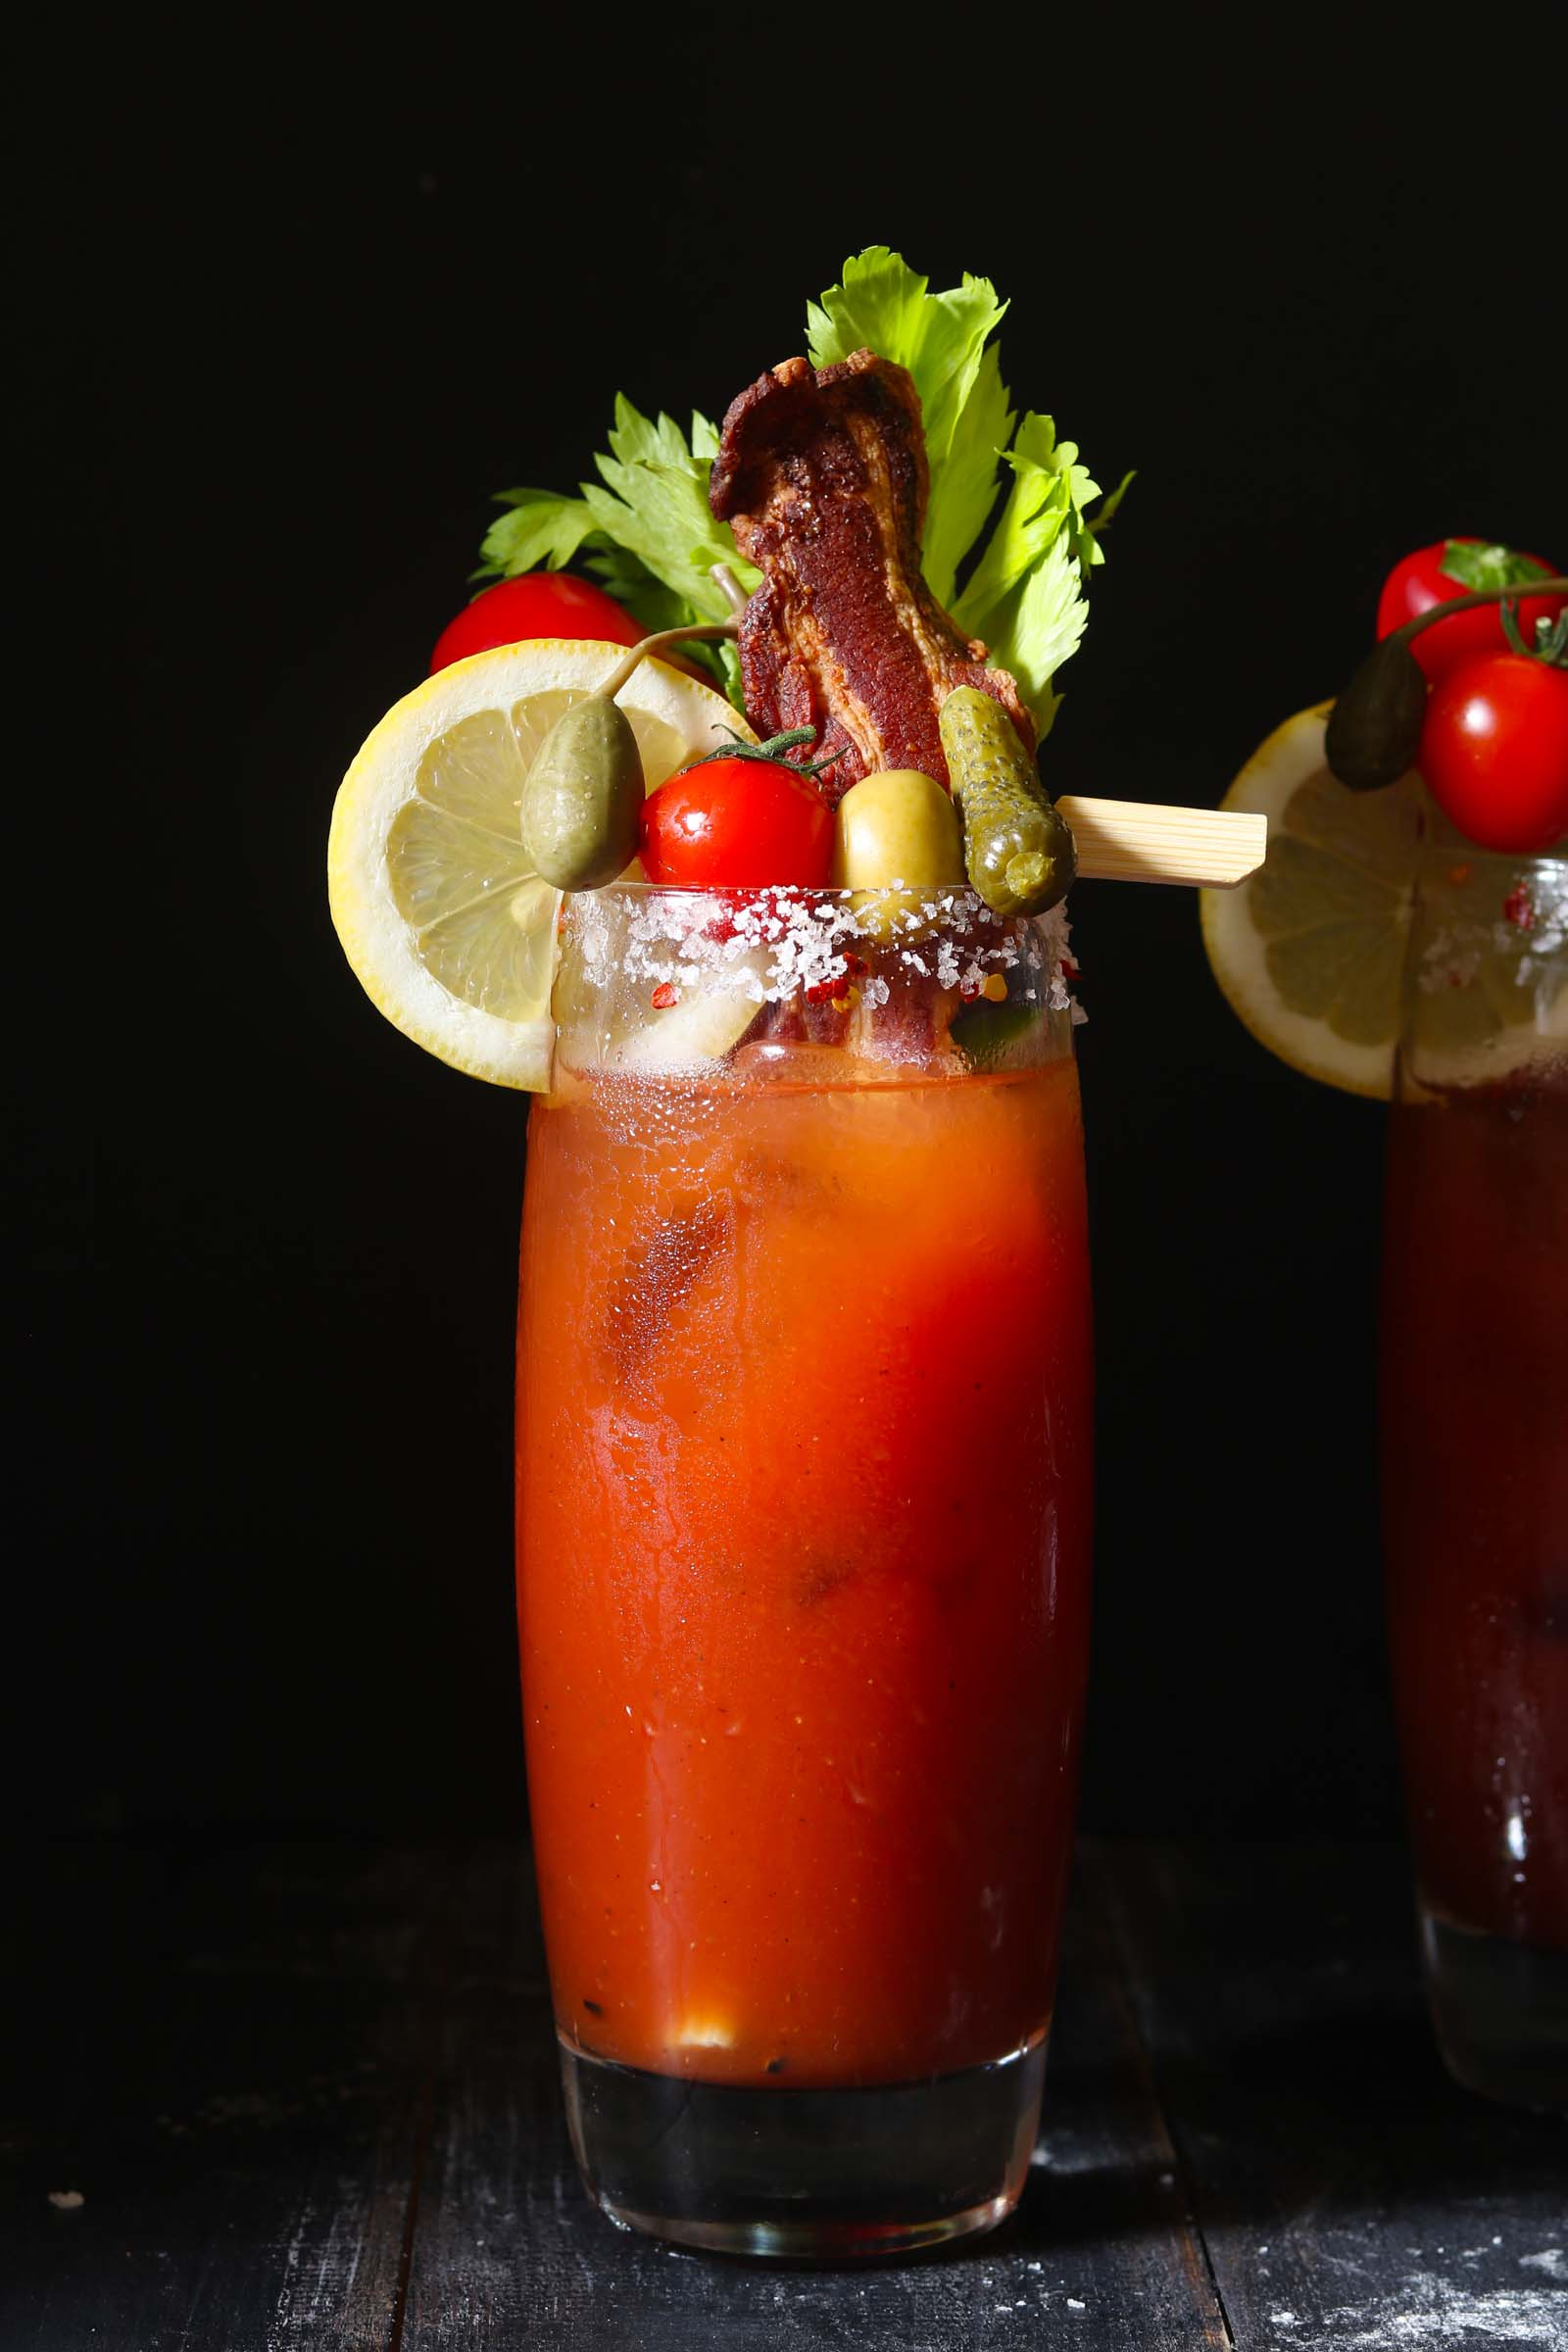 Every Sunday, Join us for Build Your Own $5 Egg Sandwiches & All Day Happy Hour with Bloody Mary & Drink Specials at the Bar!